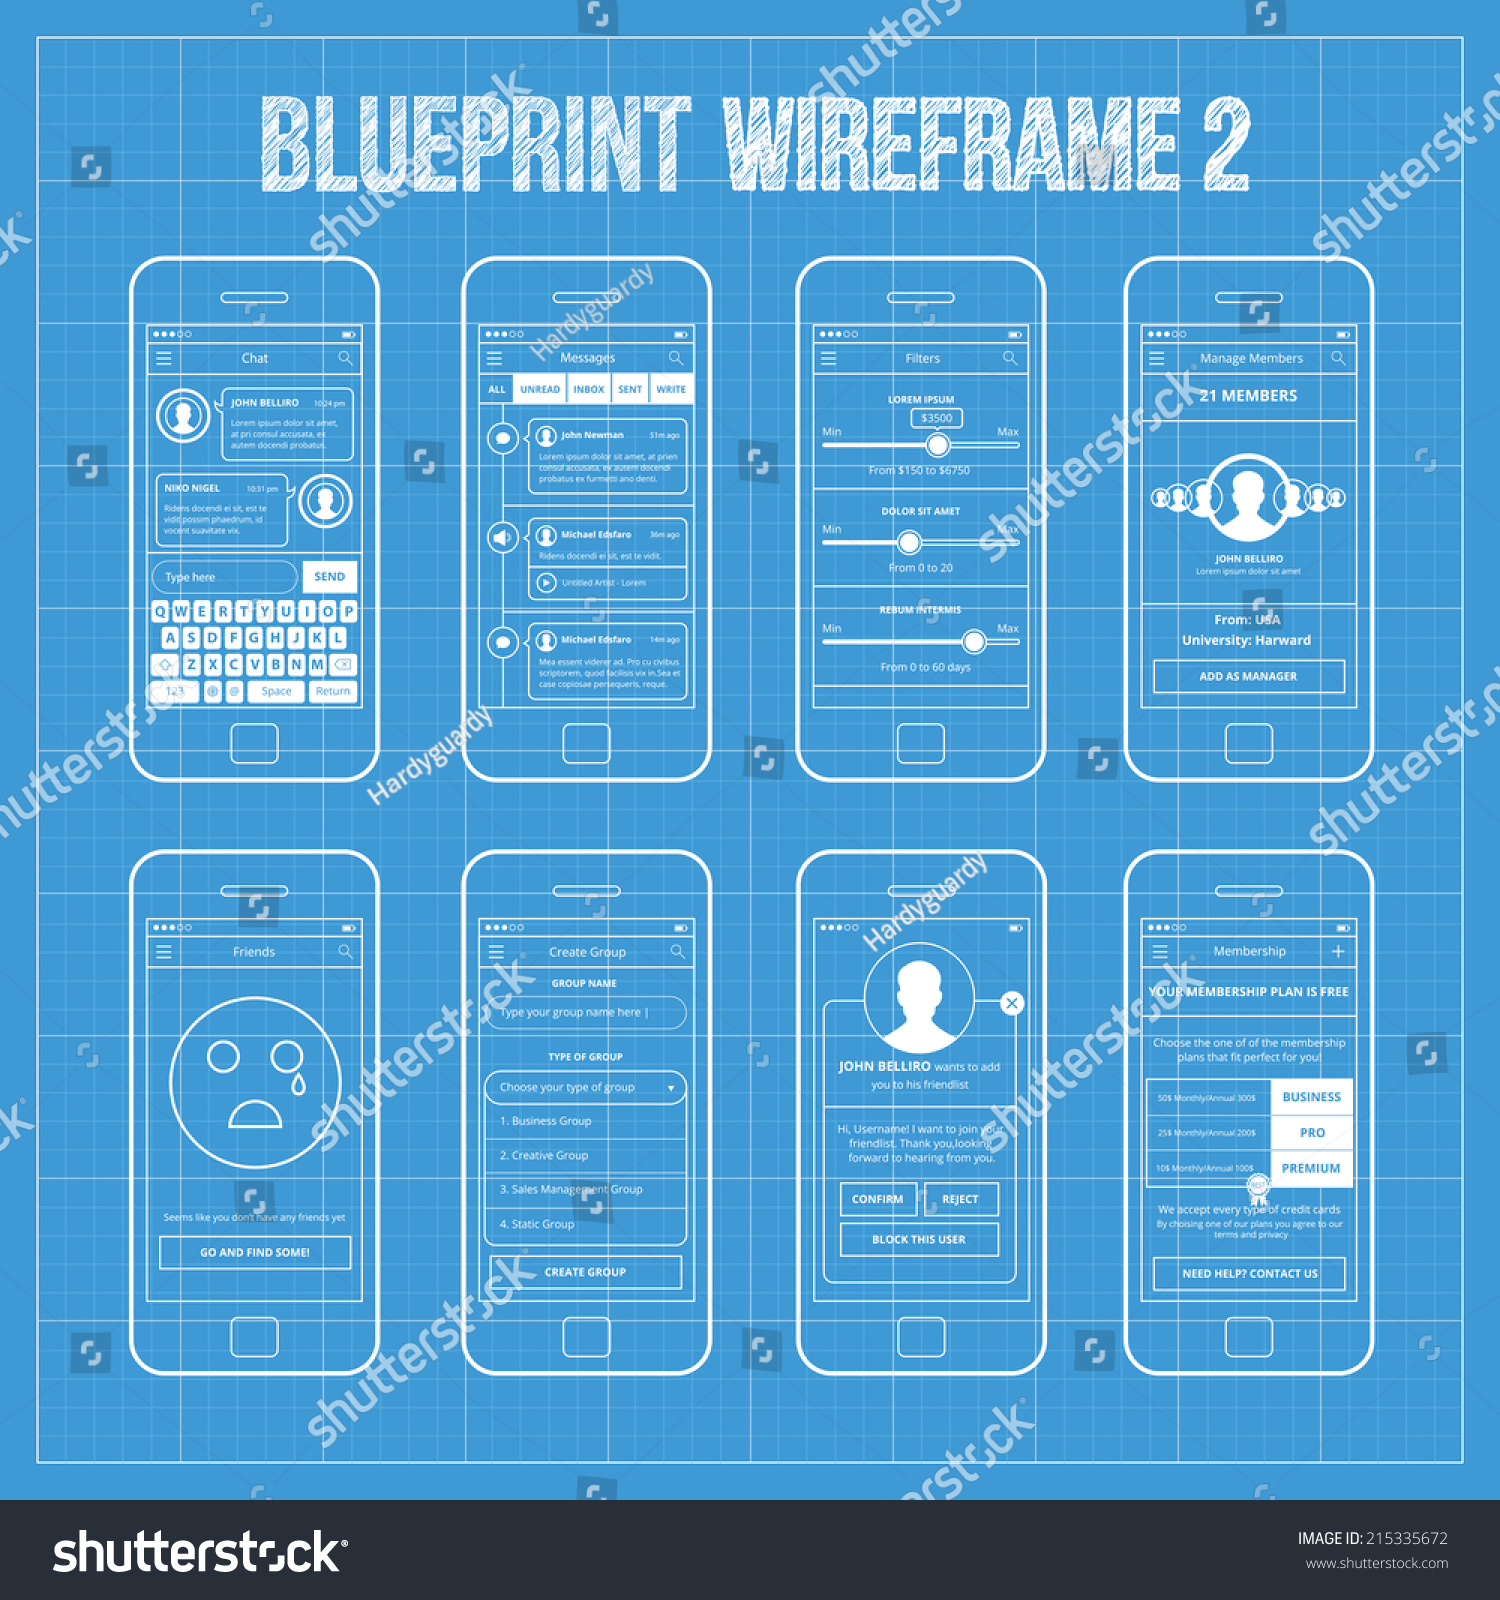 Blueprint wireframe mobile app ui kit 2 chat screen for Blueprint creator app